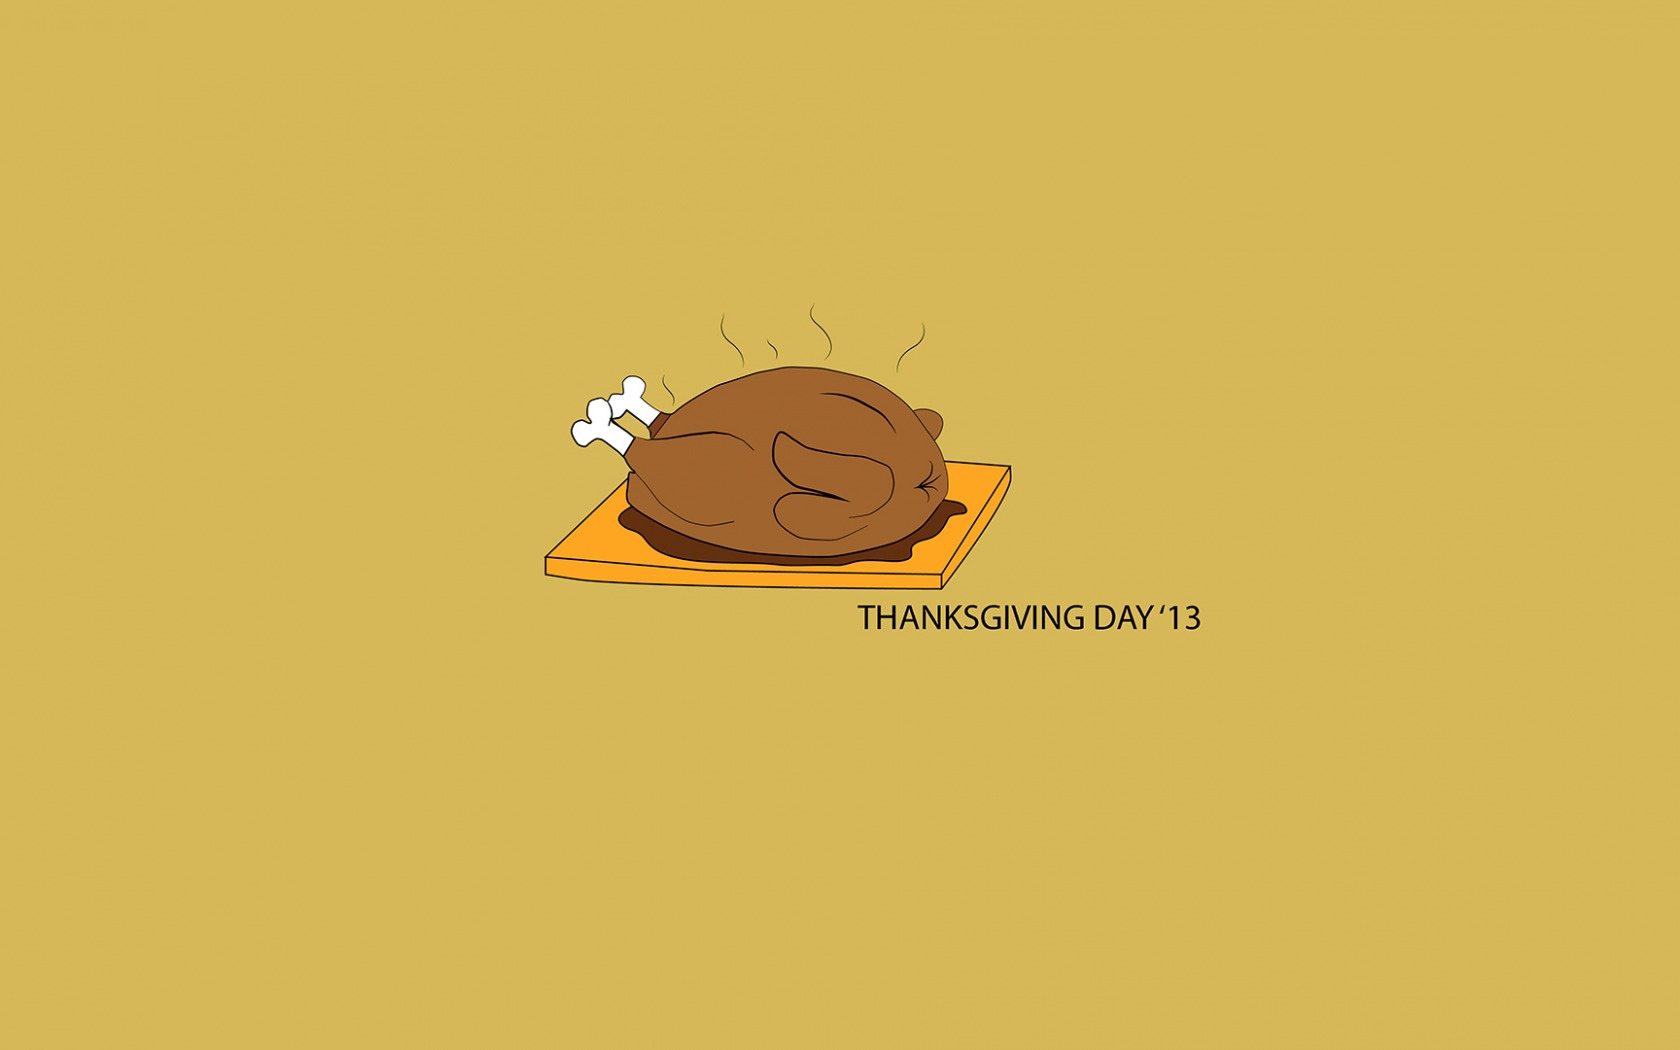 Download Turkey Day Wallpaper Hd Backgrounds Download Itl Cat